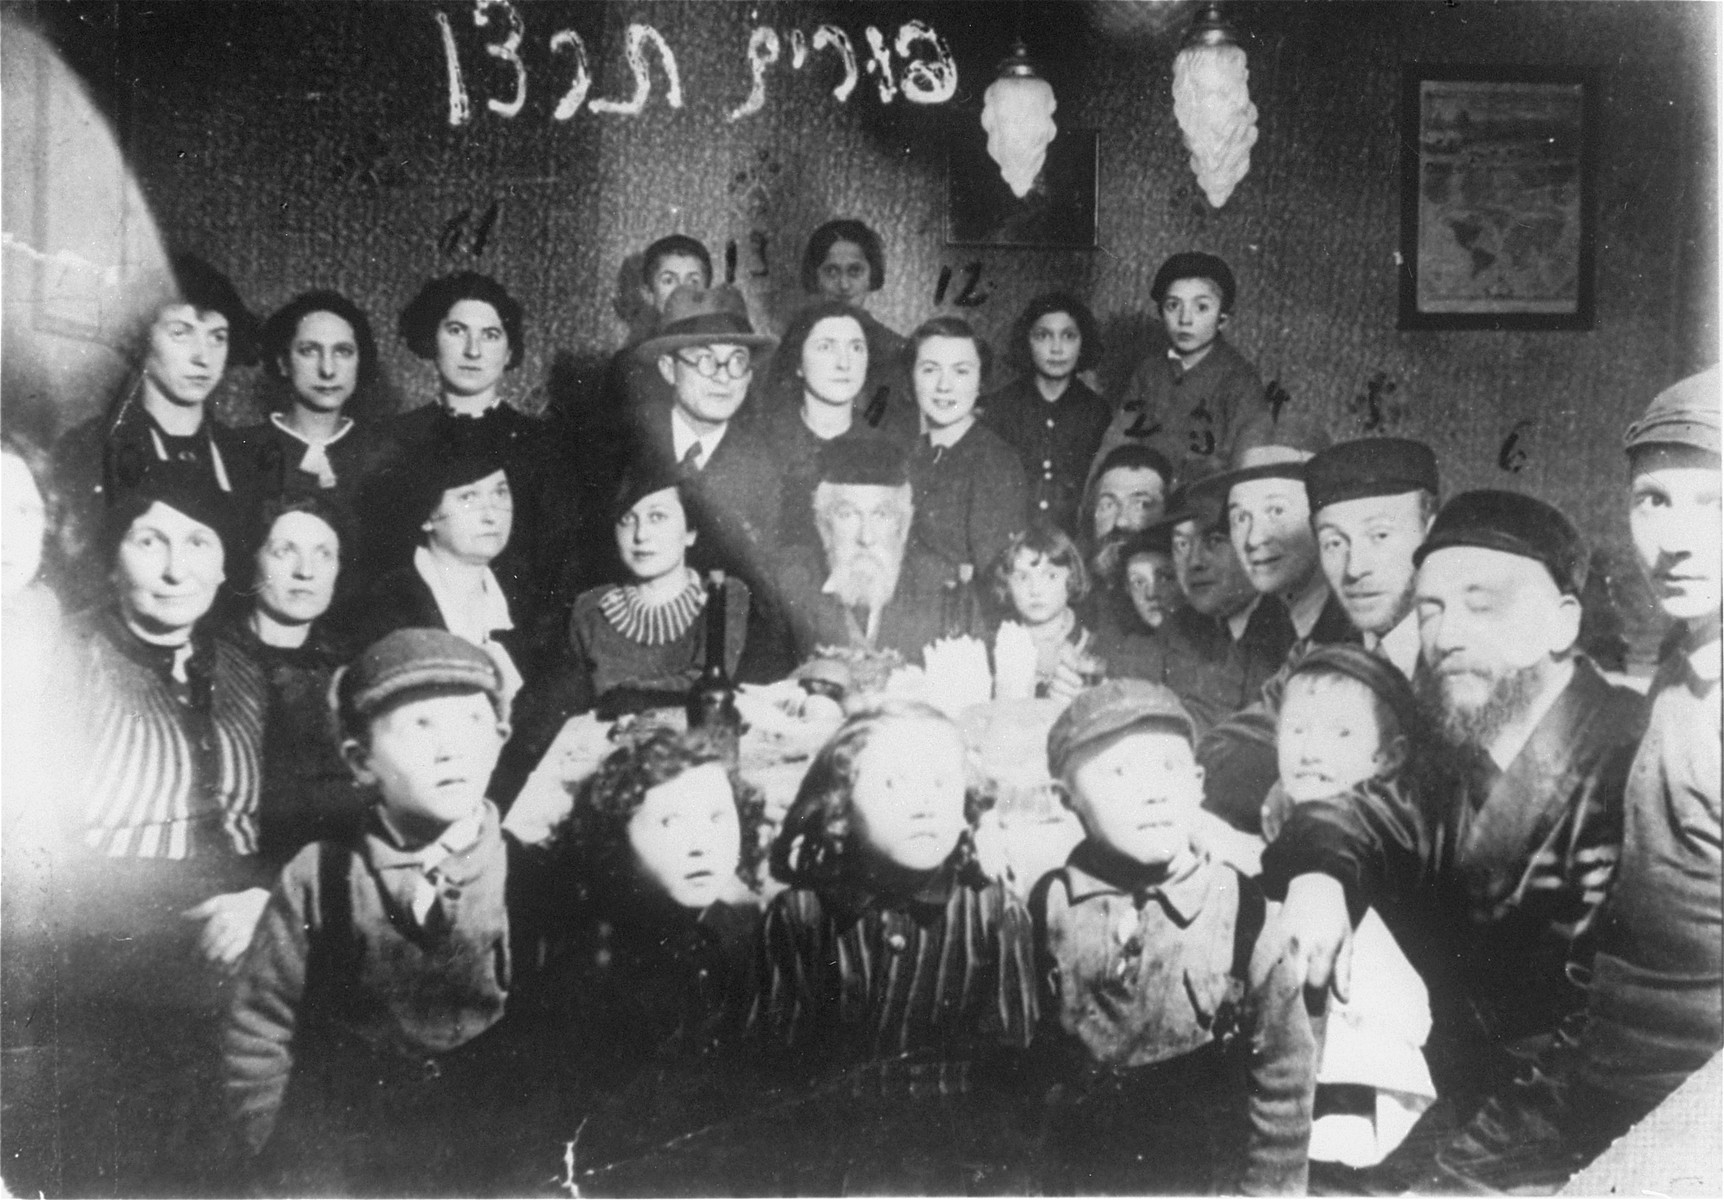 Members of the extended Rosental Vigotska family attend a family celebration on Purim.   Among those pictured are Yona Wygocka Dickmann and Hajr Naselewicz Chume, two of the three members of the extended family who survived the war.